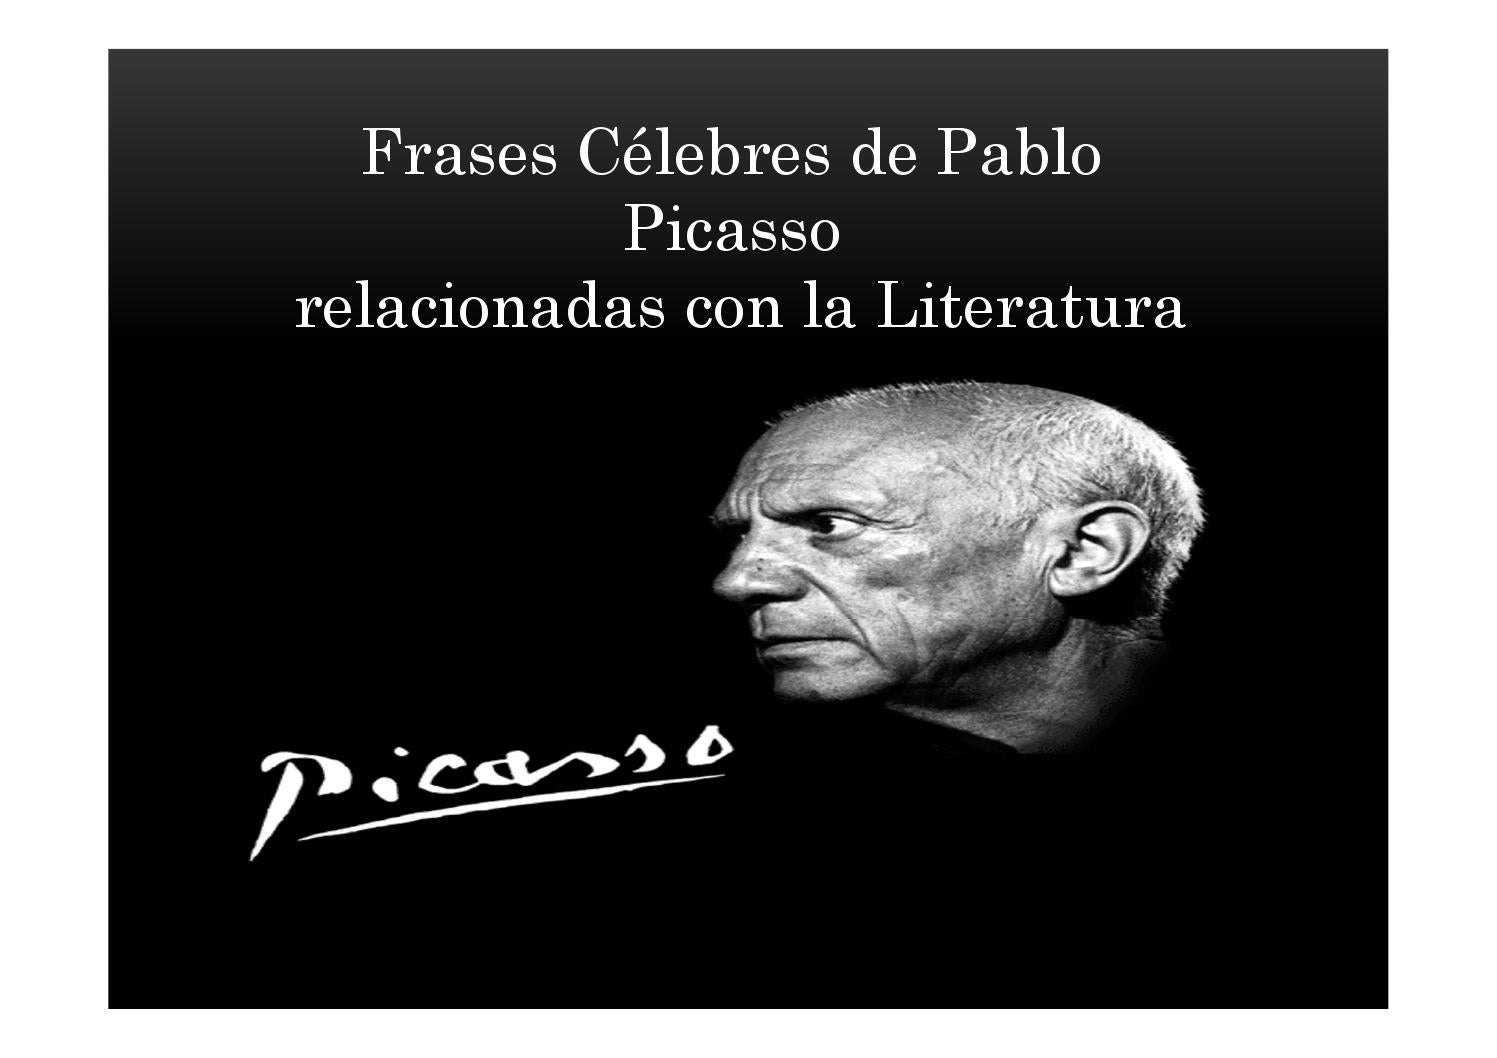 Frases Celebres William Shakespeare Frases Célebres De Picasso By O Faro De Sofía Issuu